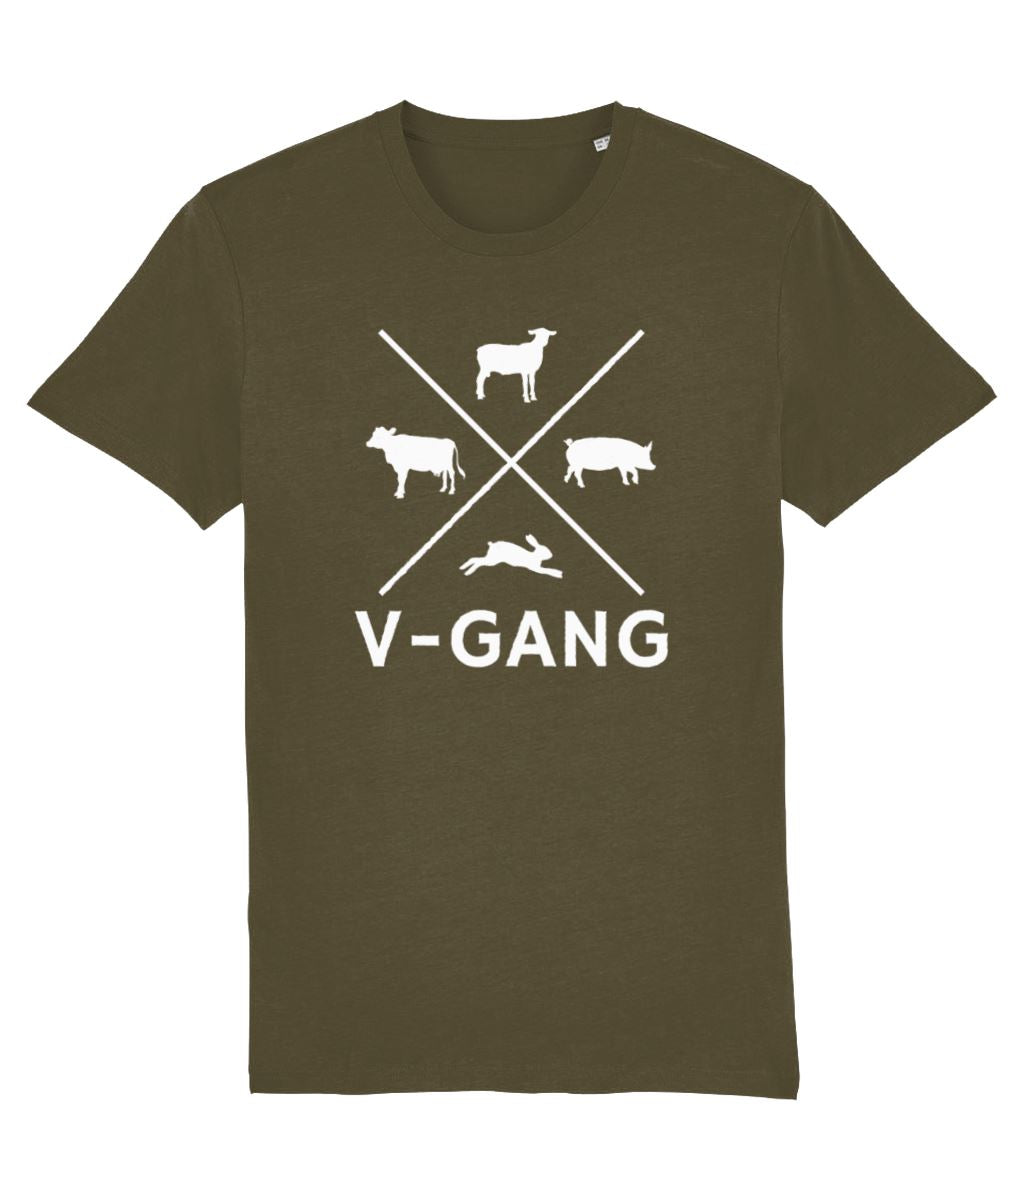 """V-Gang"" Vegan T-Shirt - 100% Organic Cotton (Unisex) Clothing Vegan Original British Khaki X-Small"